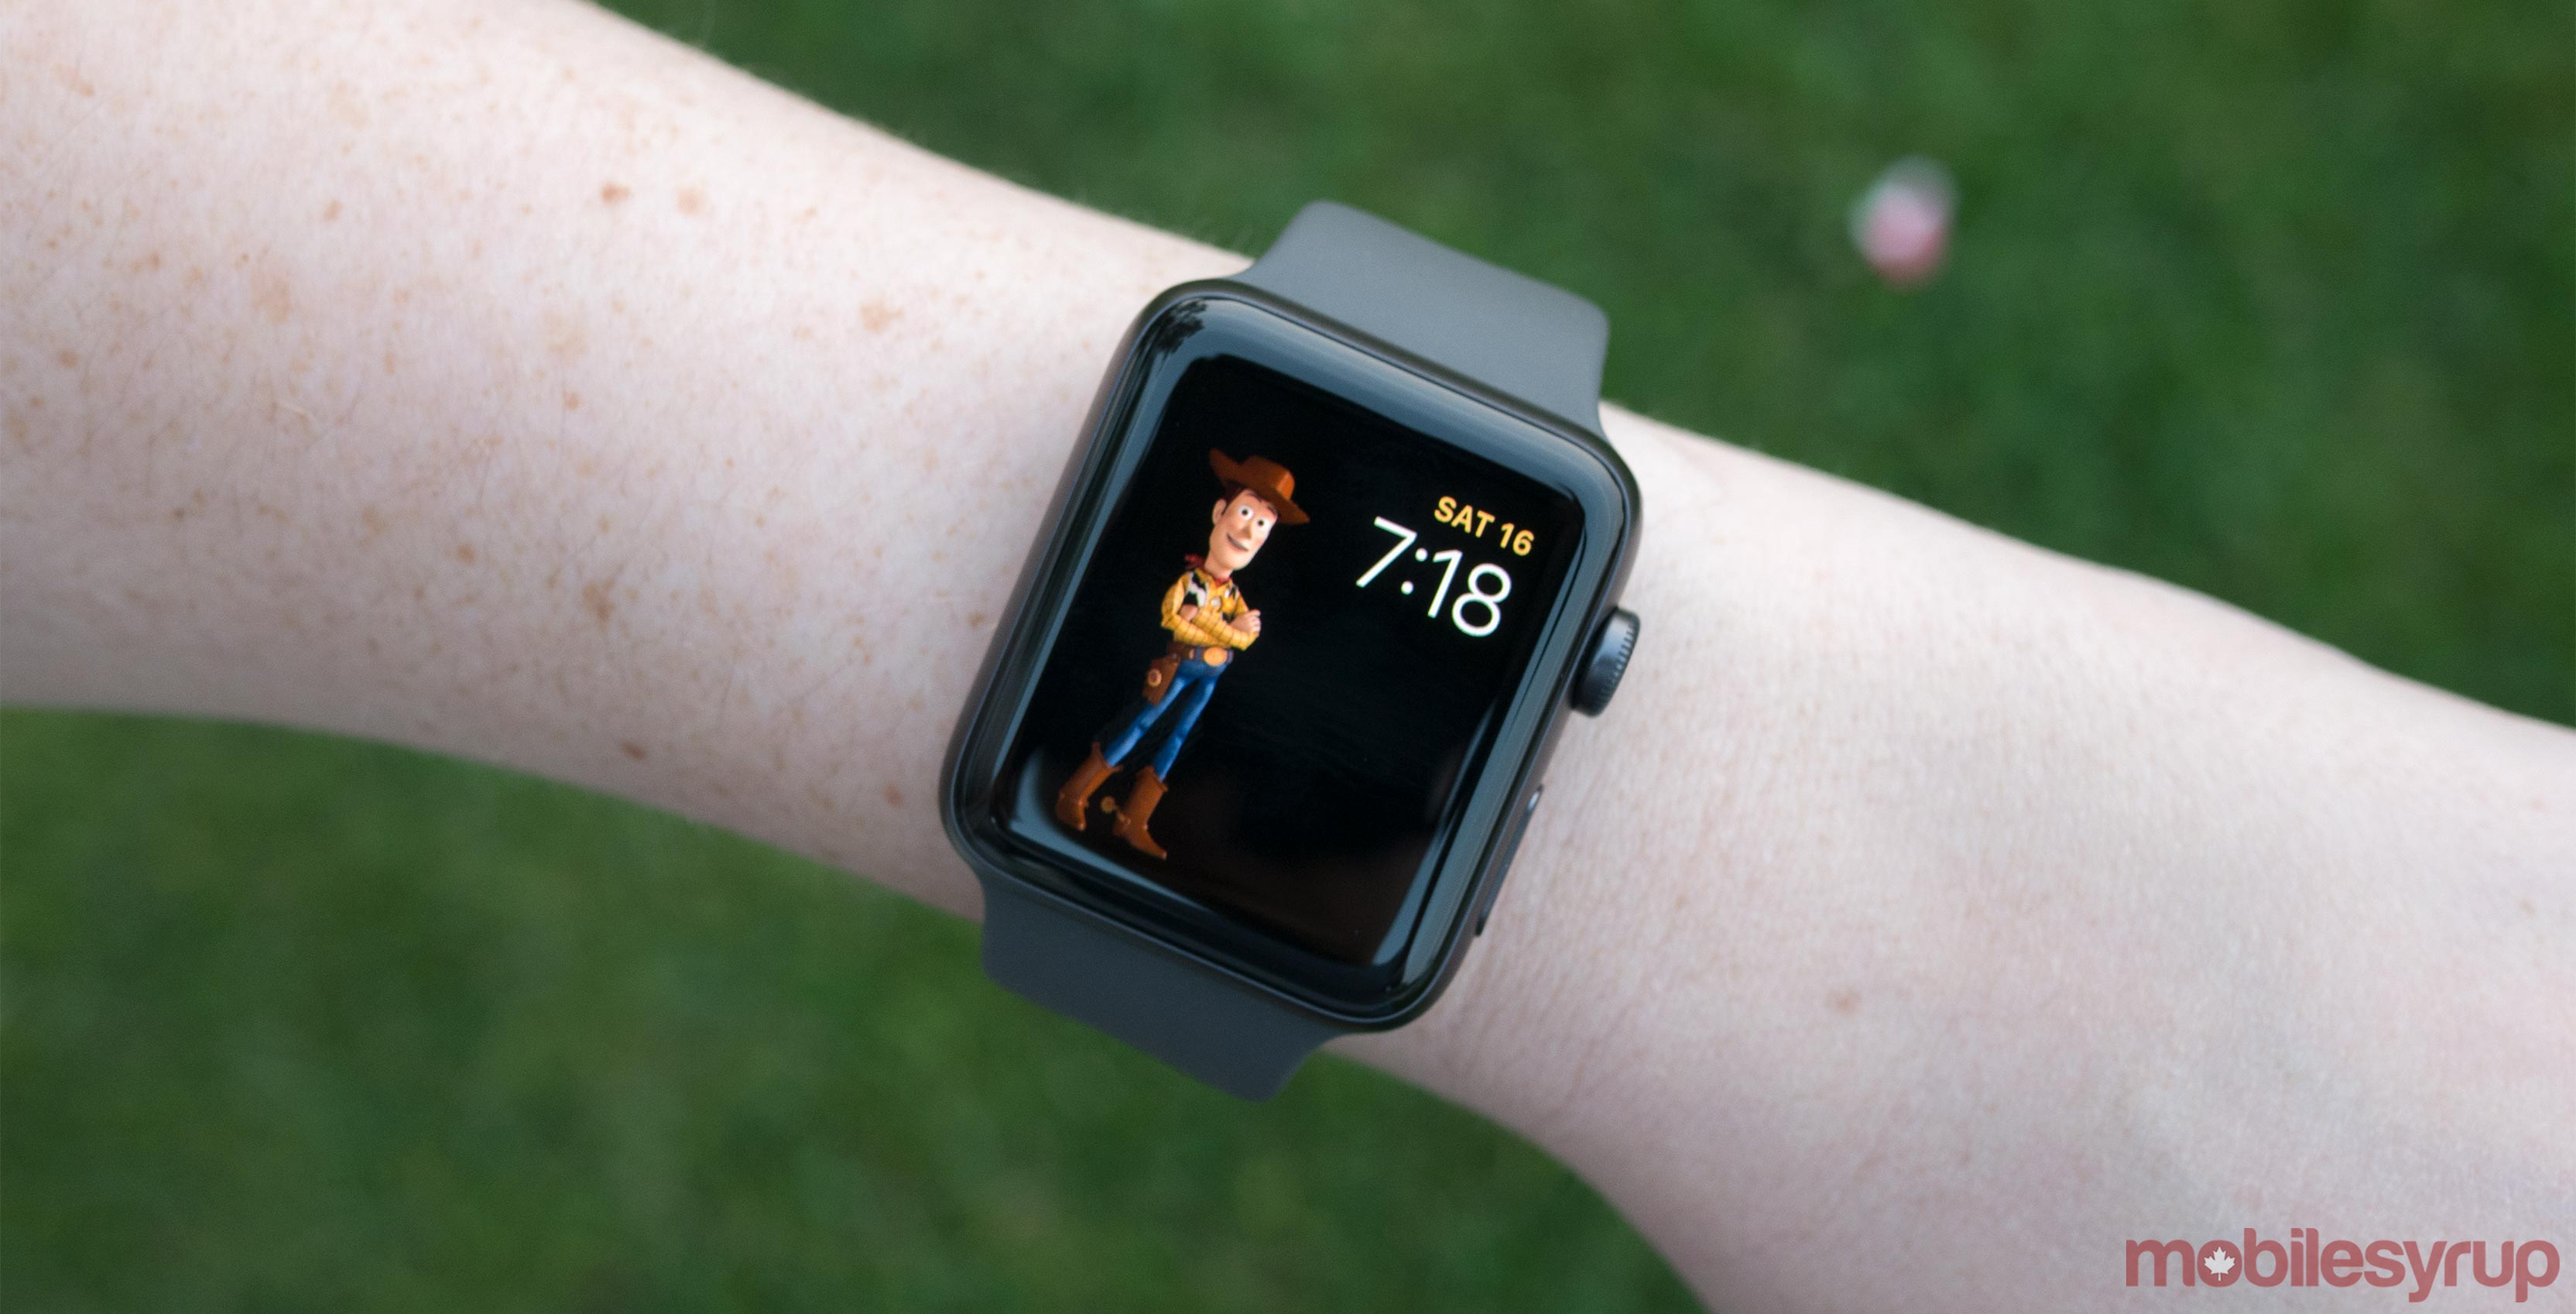 cellular adds news hands watchos apple streaming radio watches update and watch on app cnet music